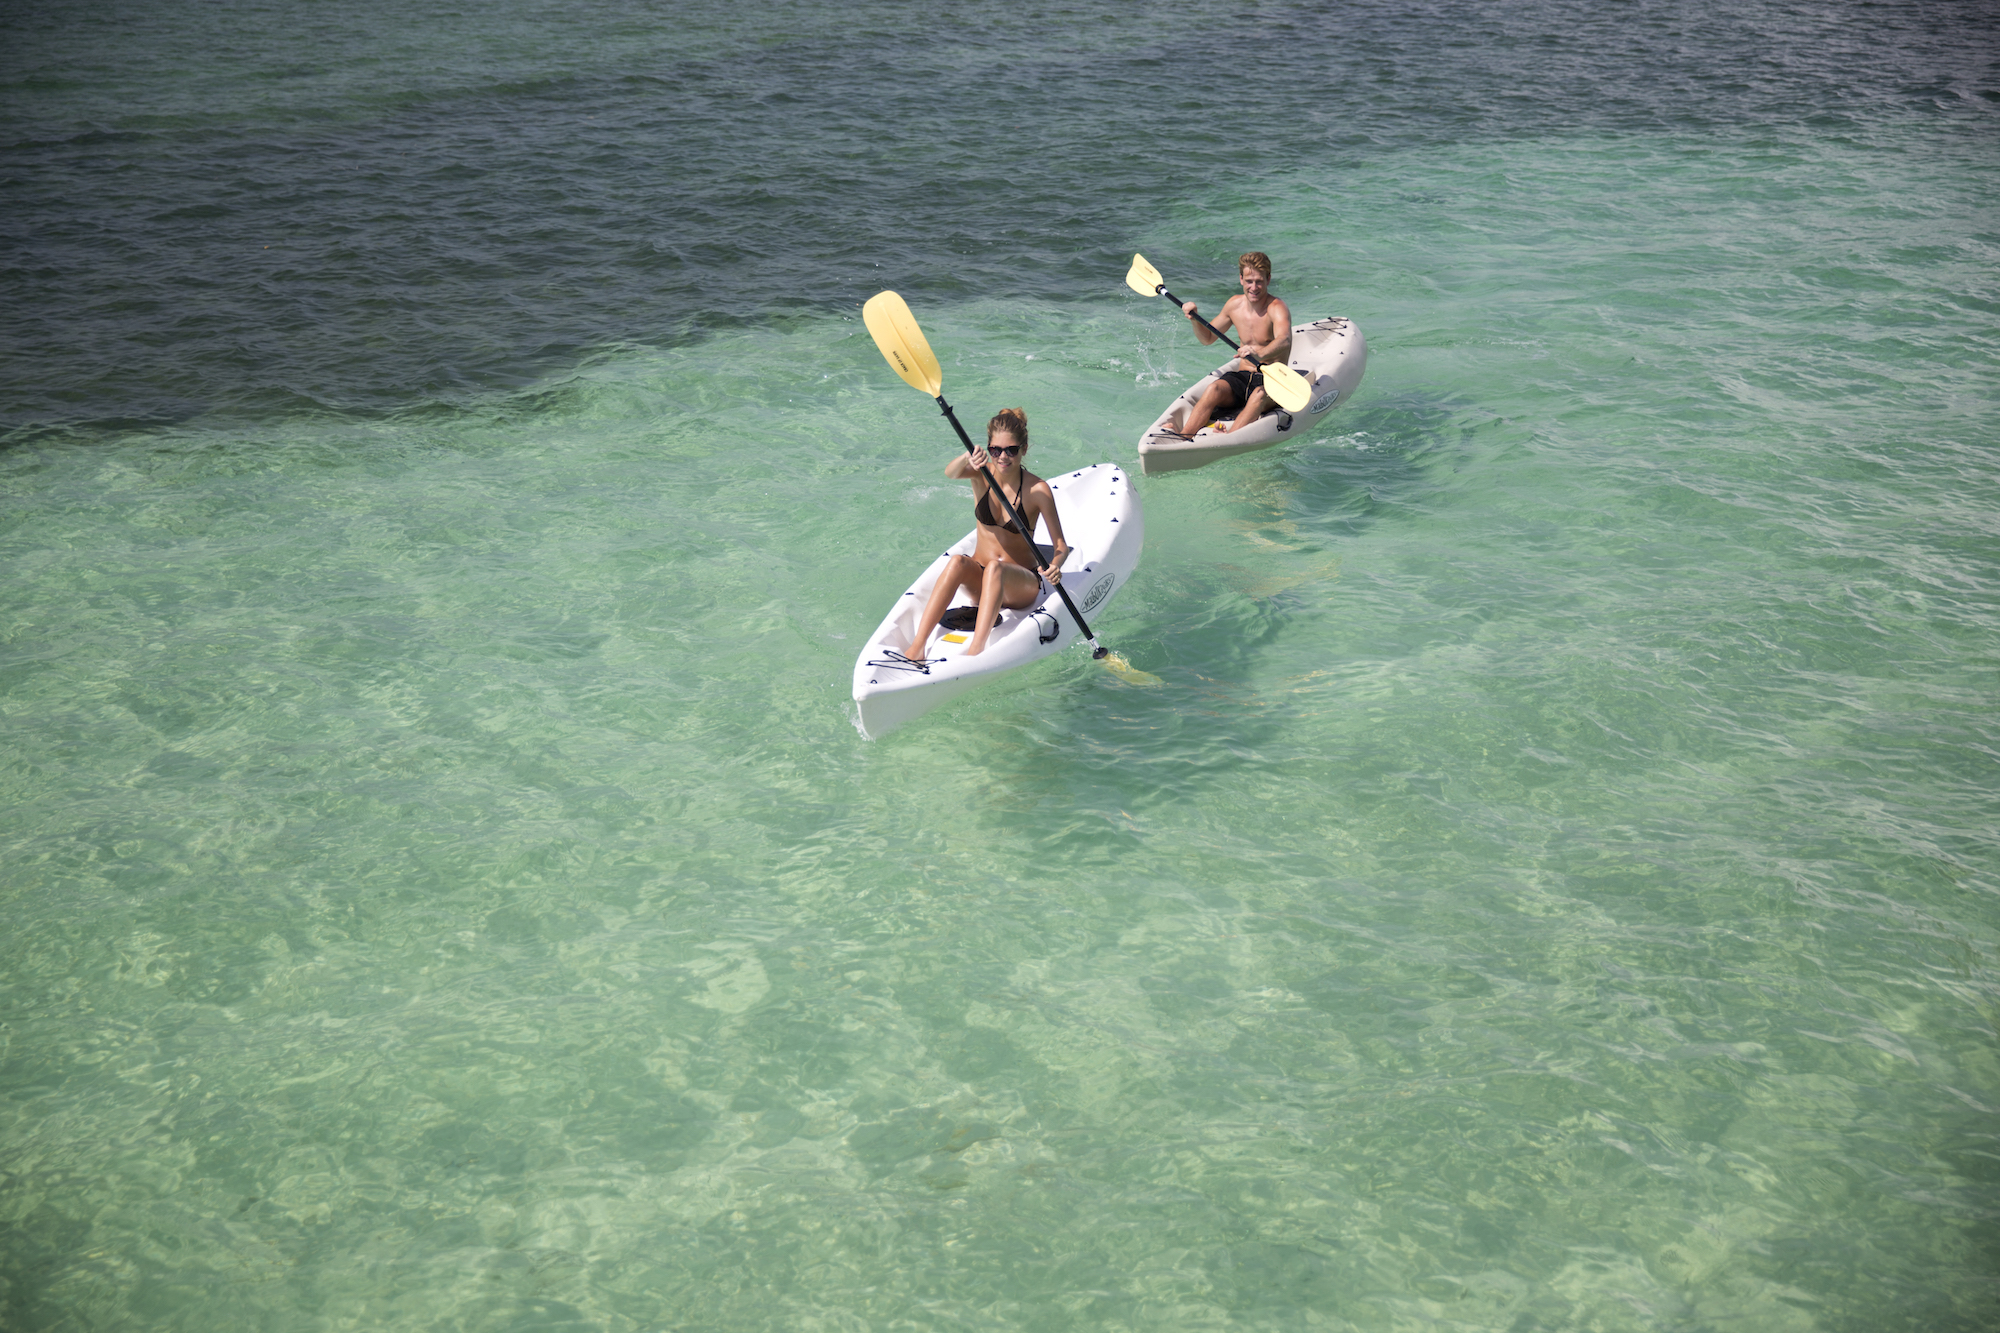 Kayaking_0051.jpg